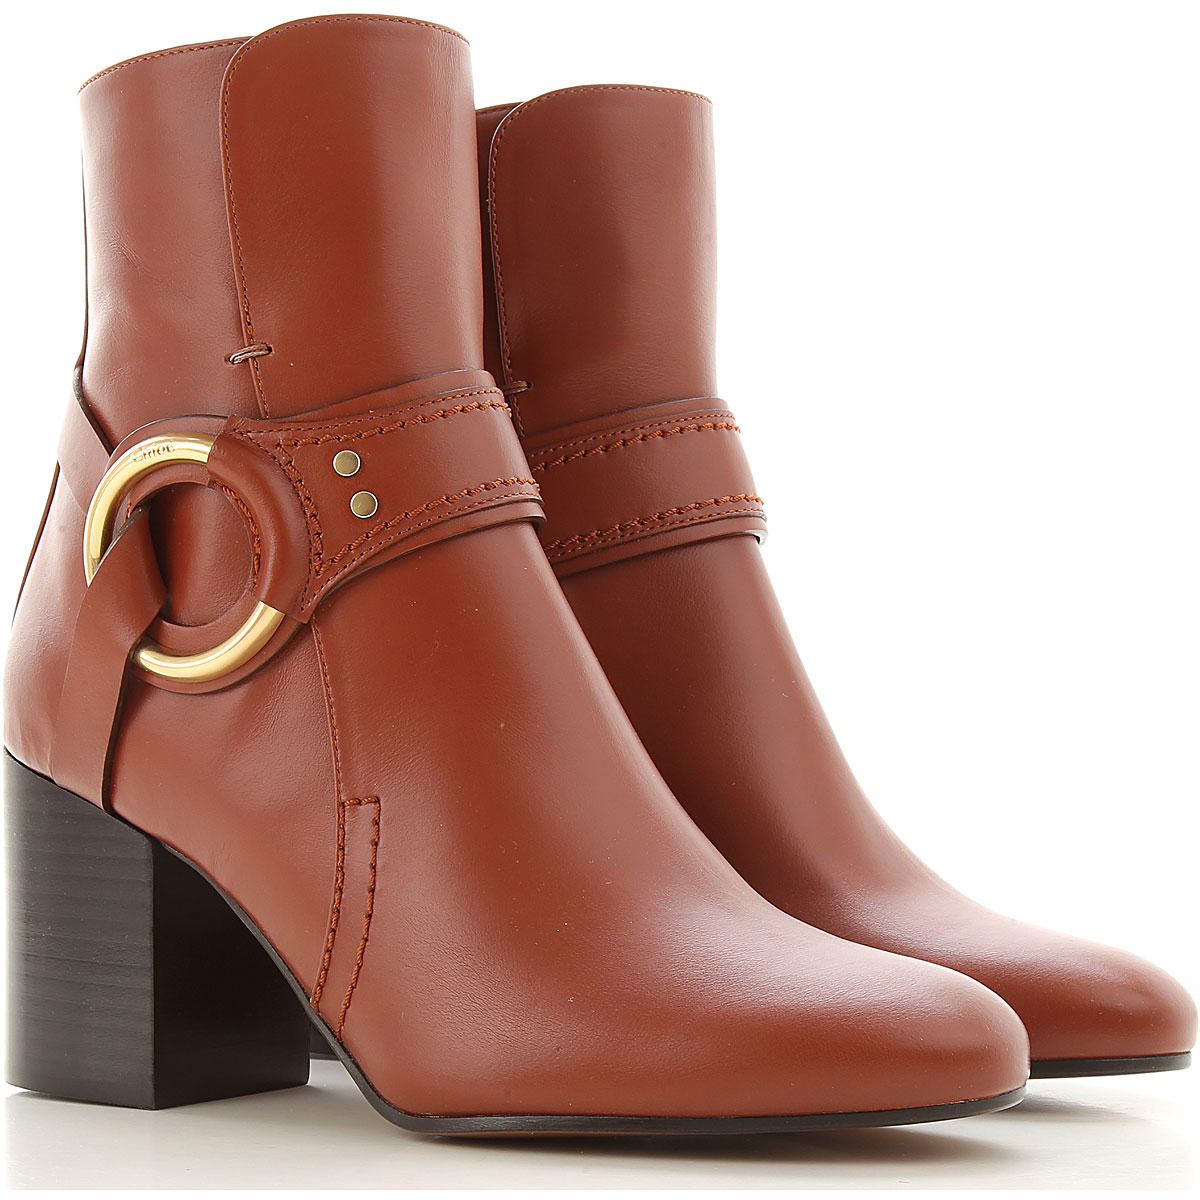 Chloe Boots for Women, Booties On Sale, Sepia Brown, Leather, 2019, 10 6 6.5 7 8 8.5 9